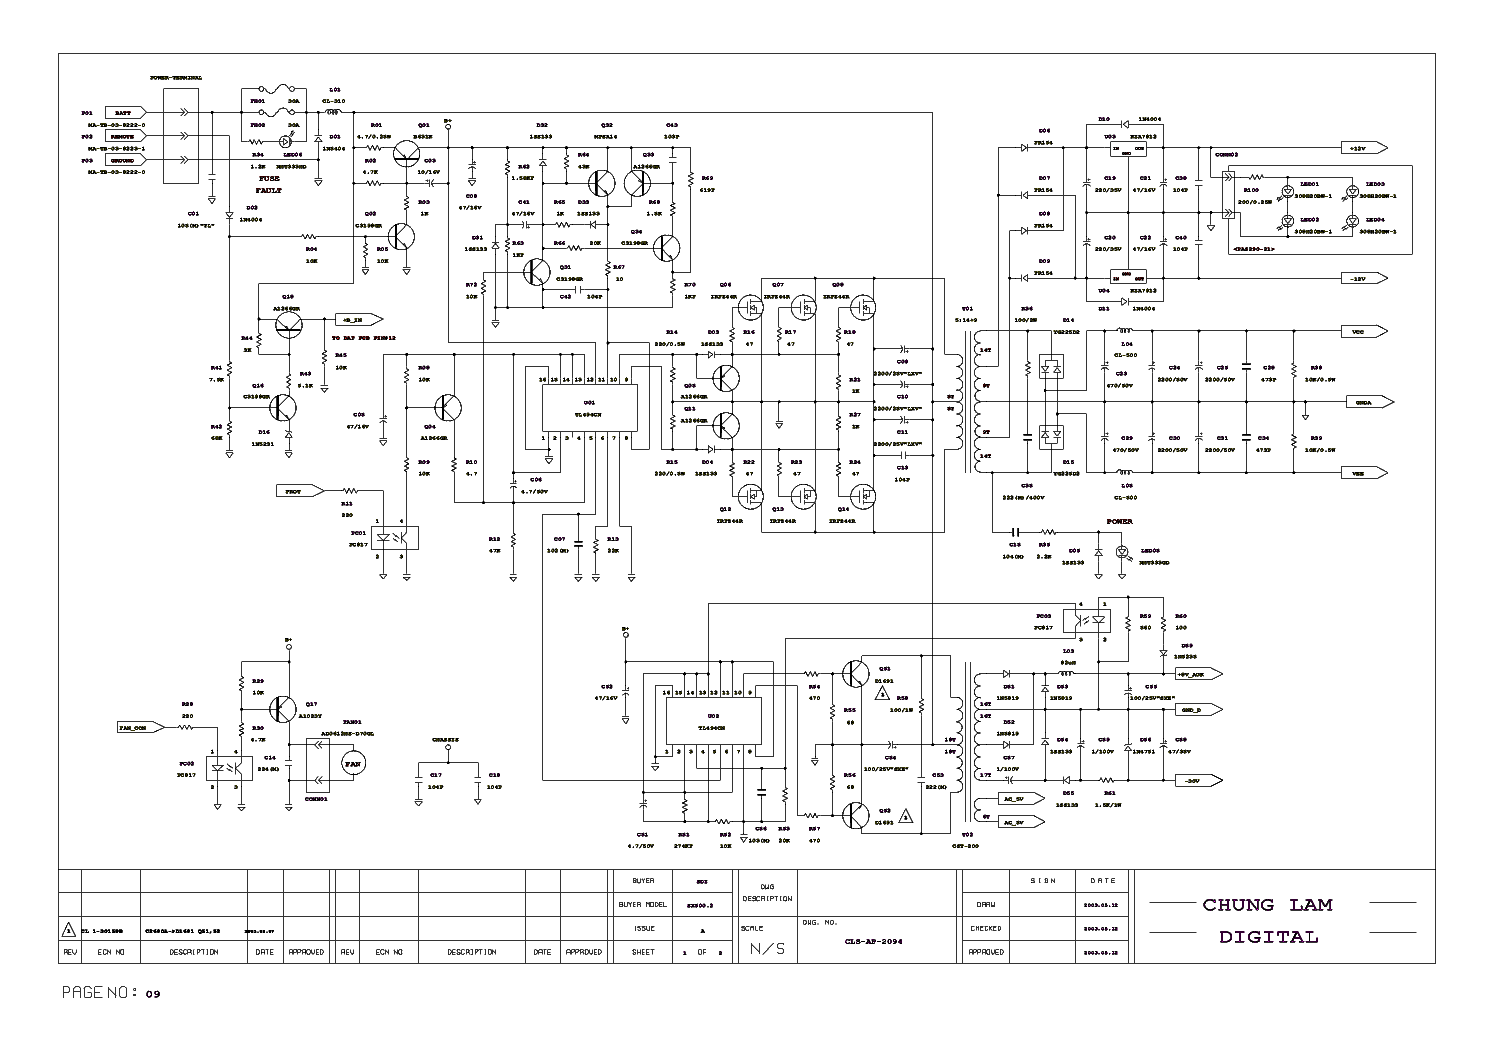 kicker amplifier schematics